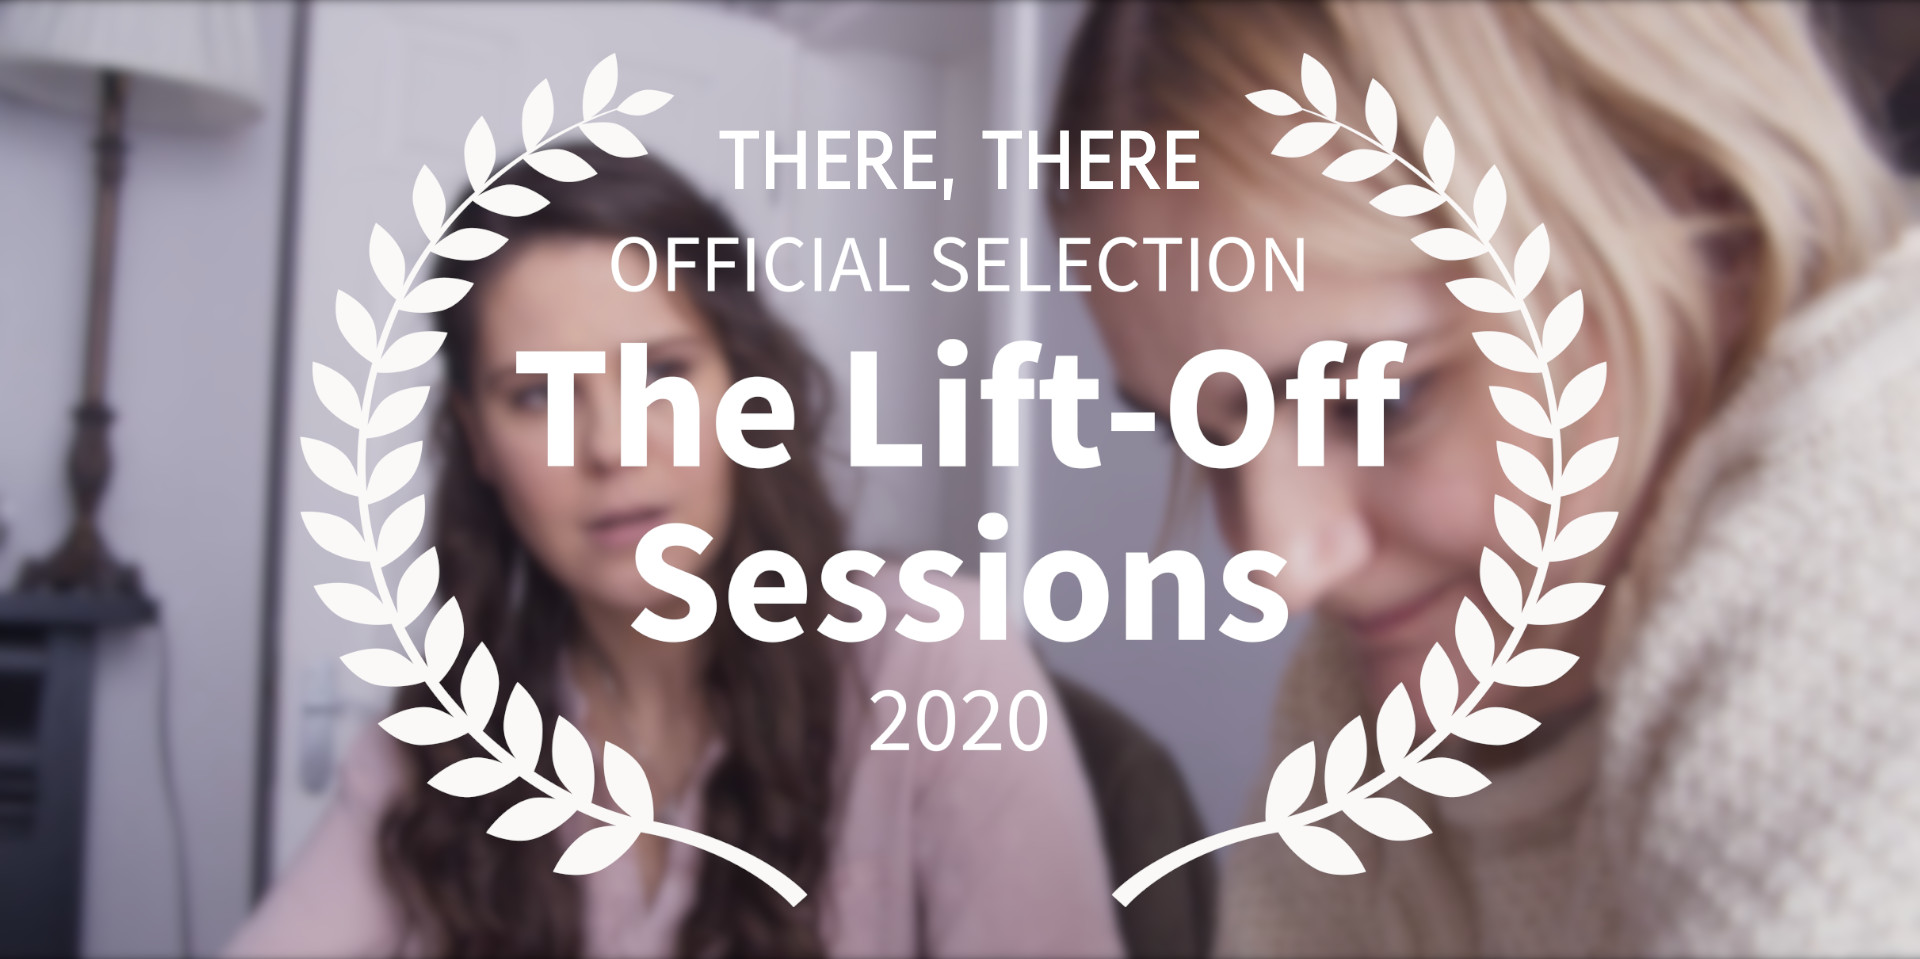 There, There short film Lift Off film festival official selection banner